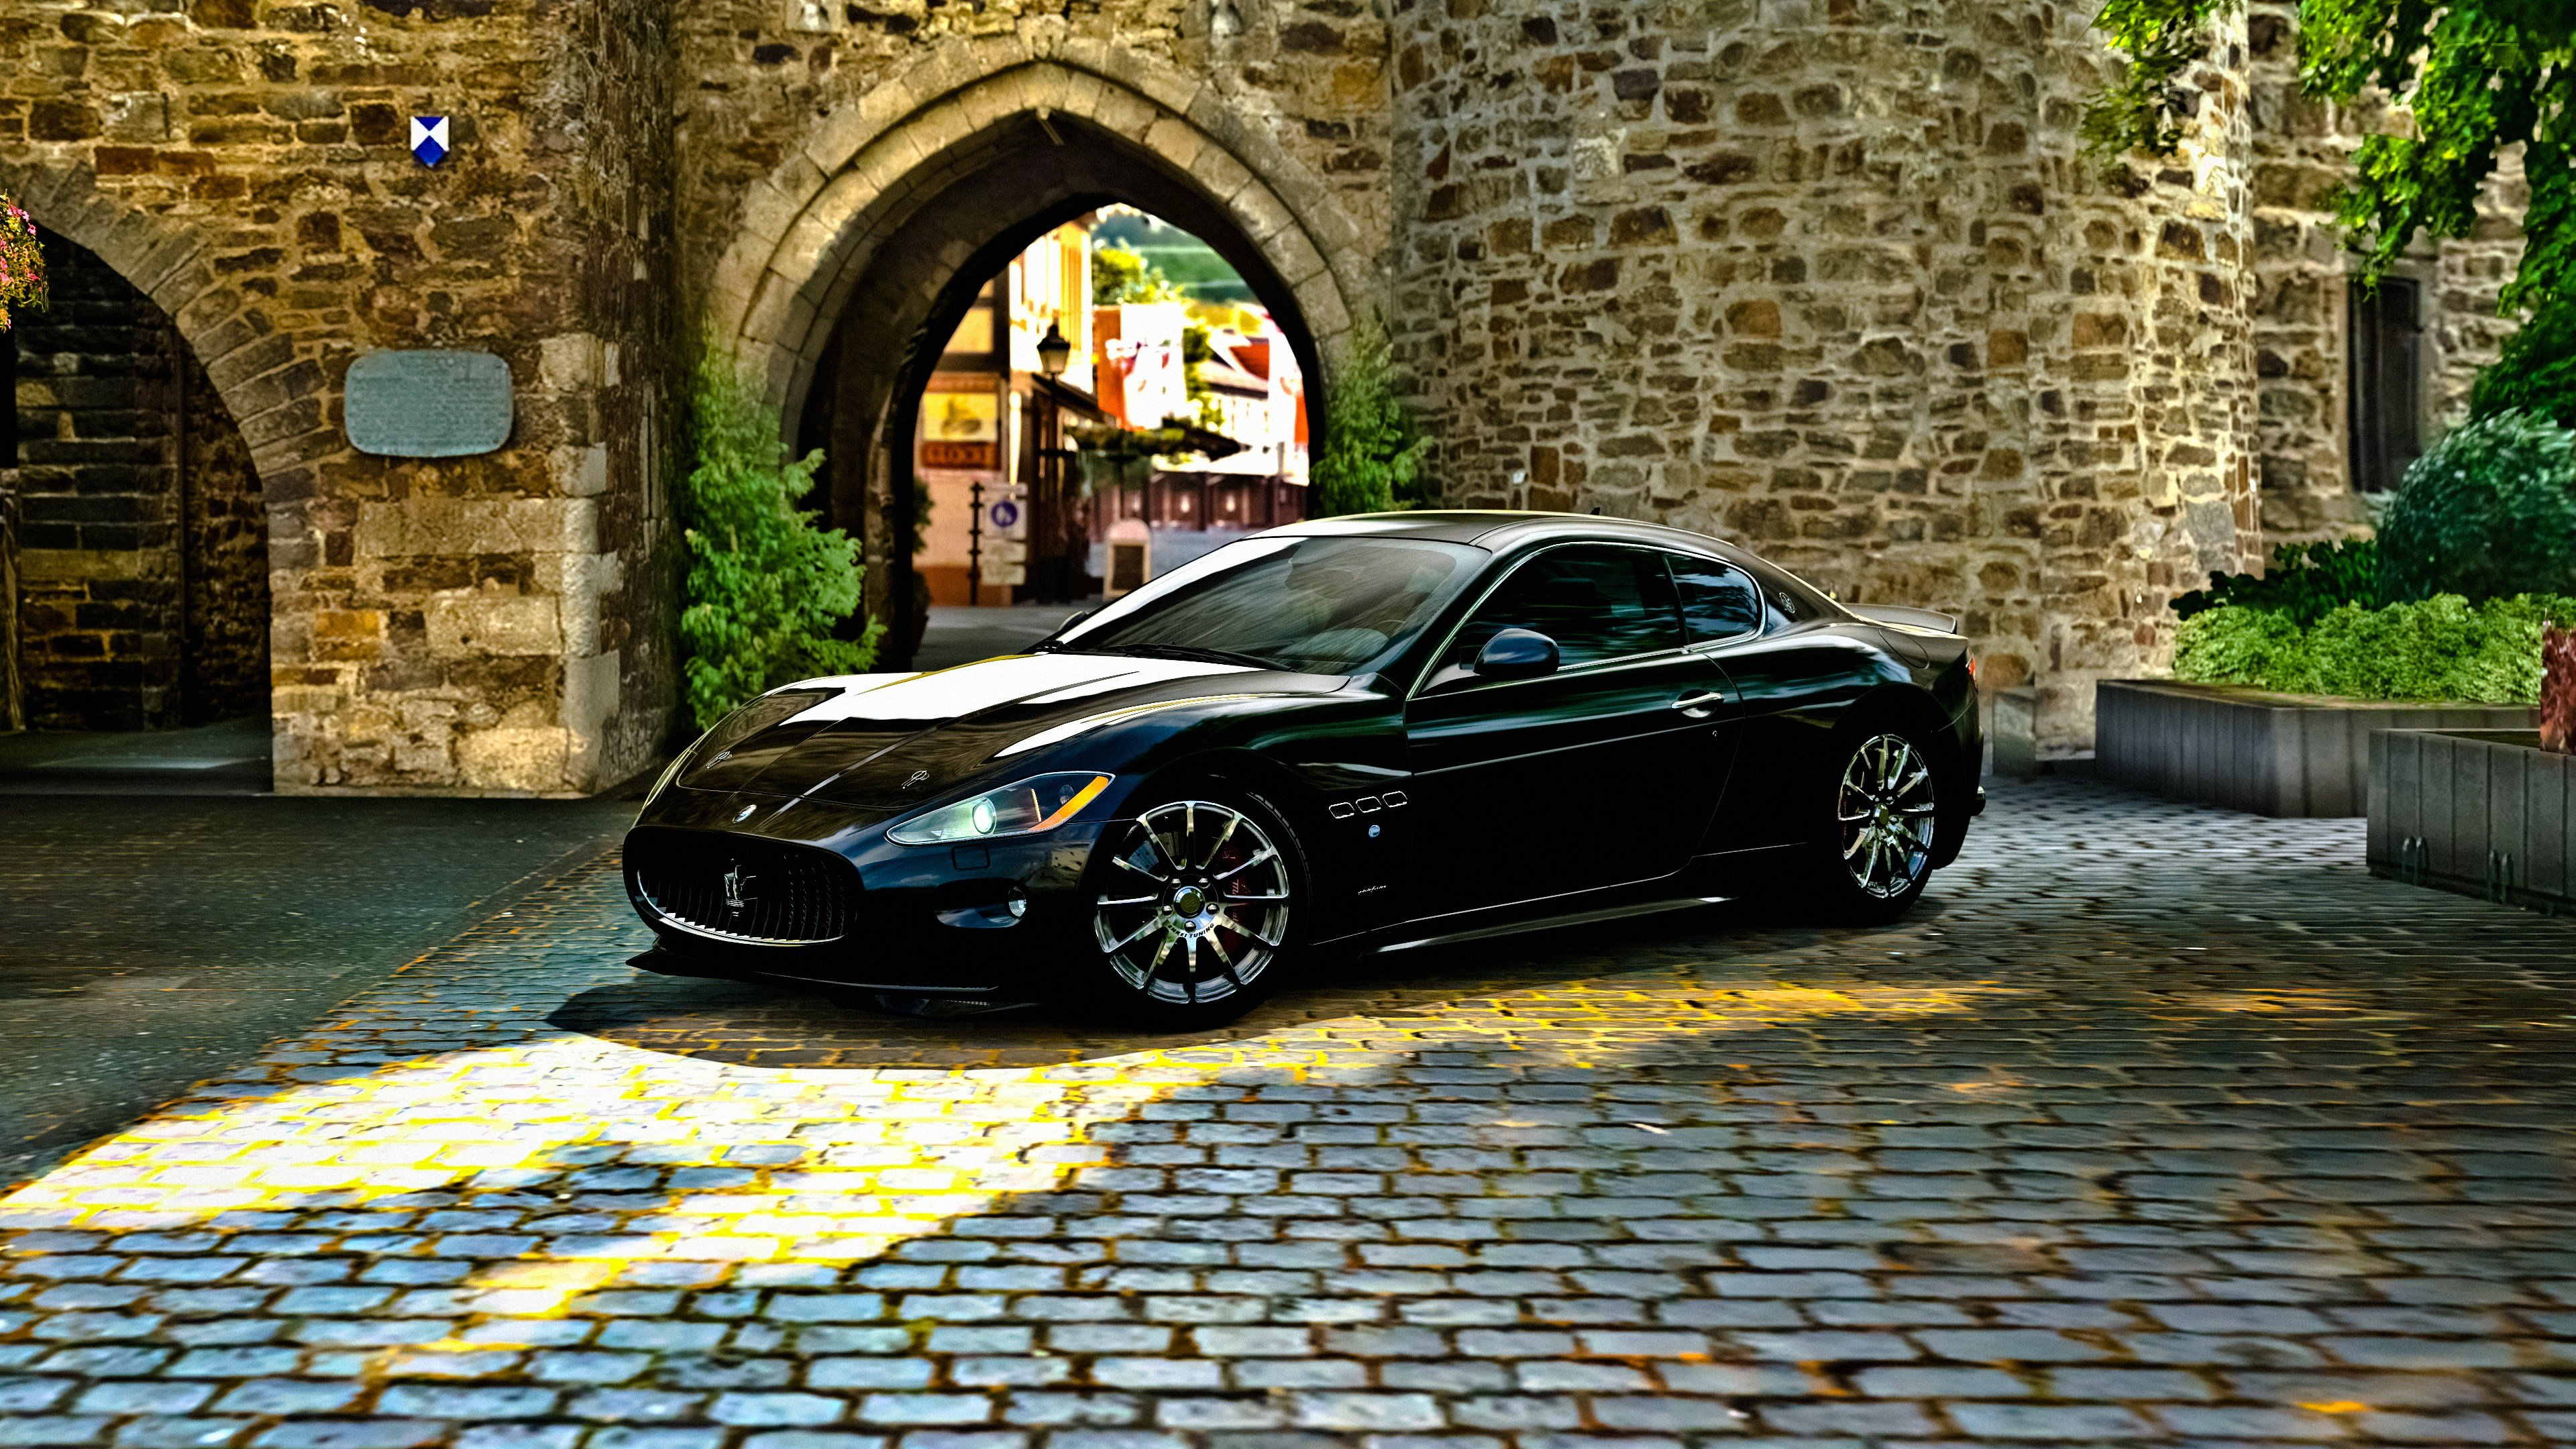 Latest 498 Maserati Hd Wallpapers Background Images Wallpaper Free Download